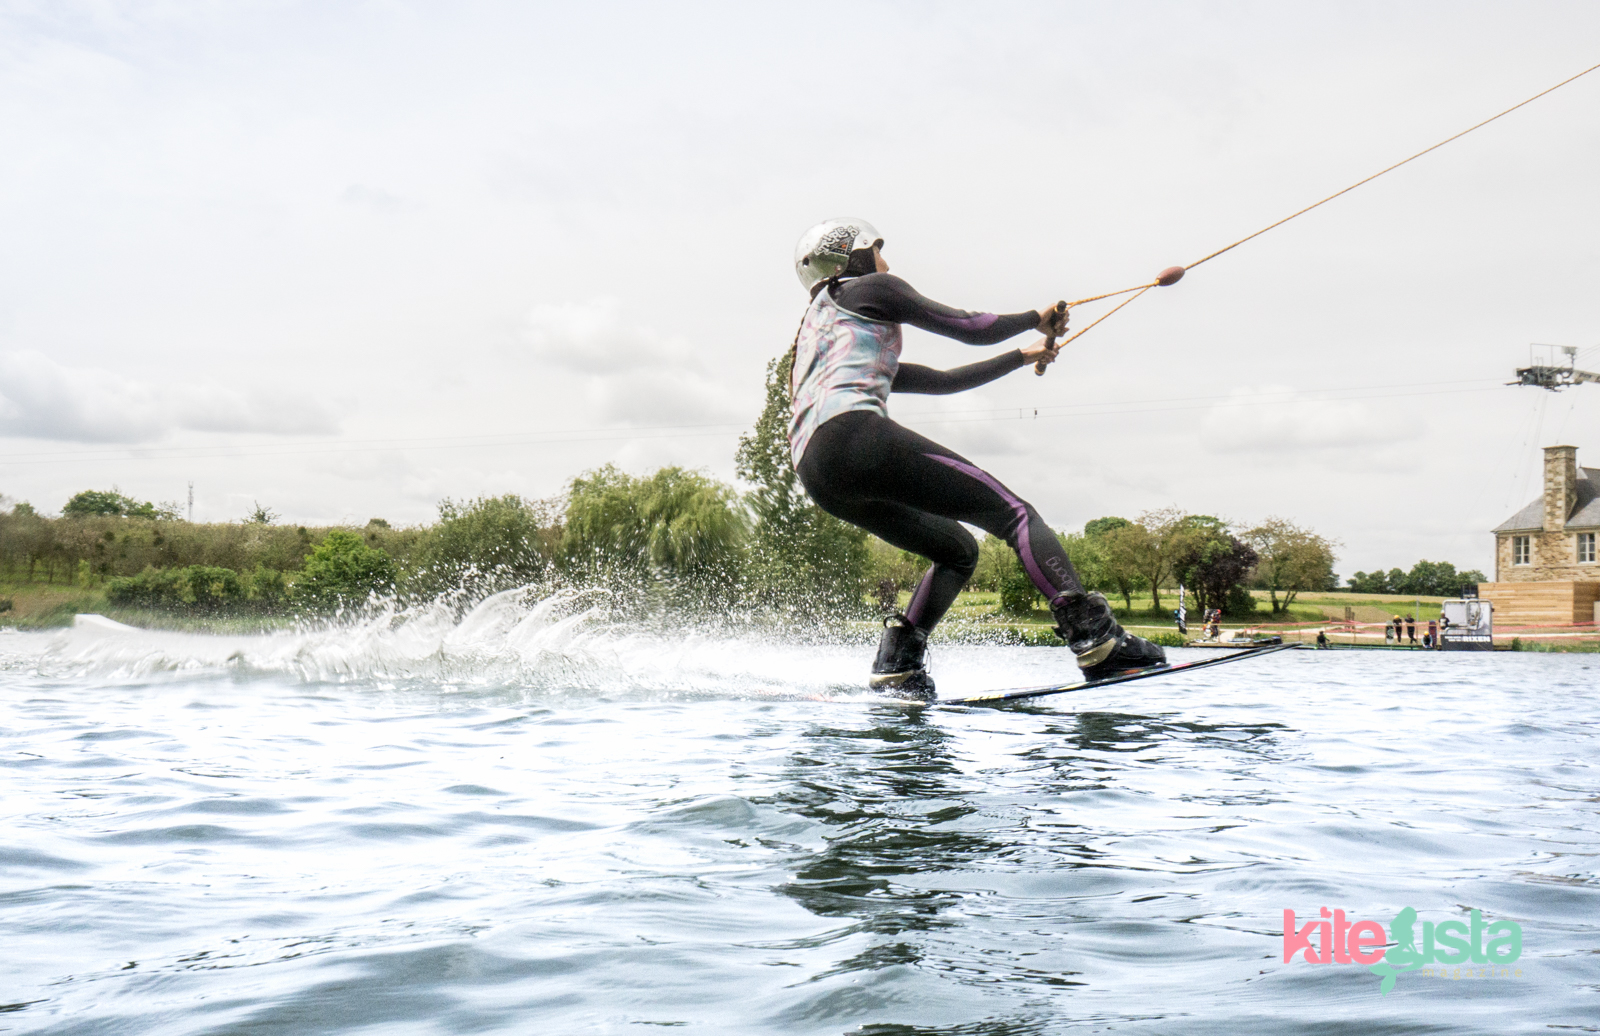 Taking Corners at the cable Park - KiteSista